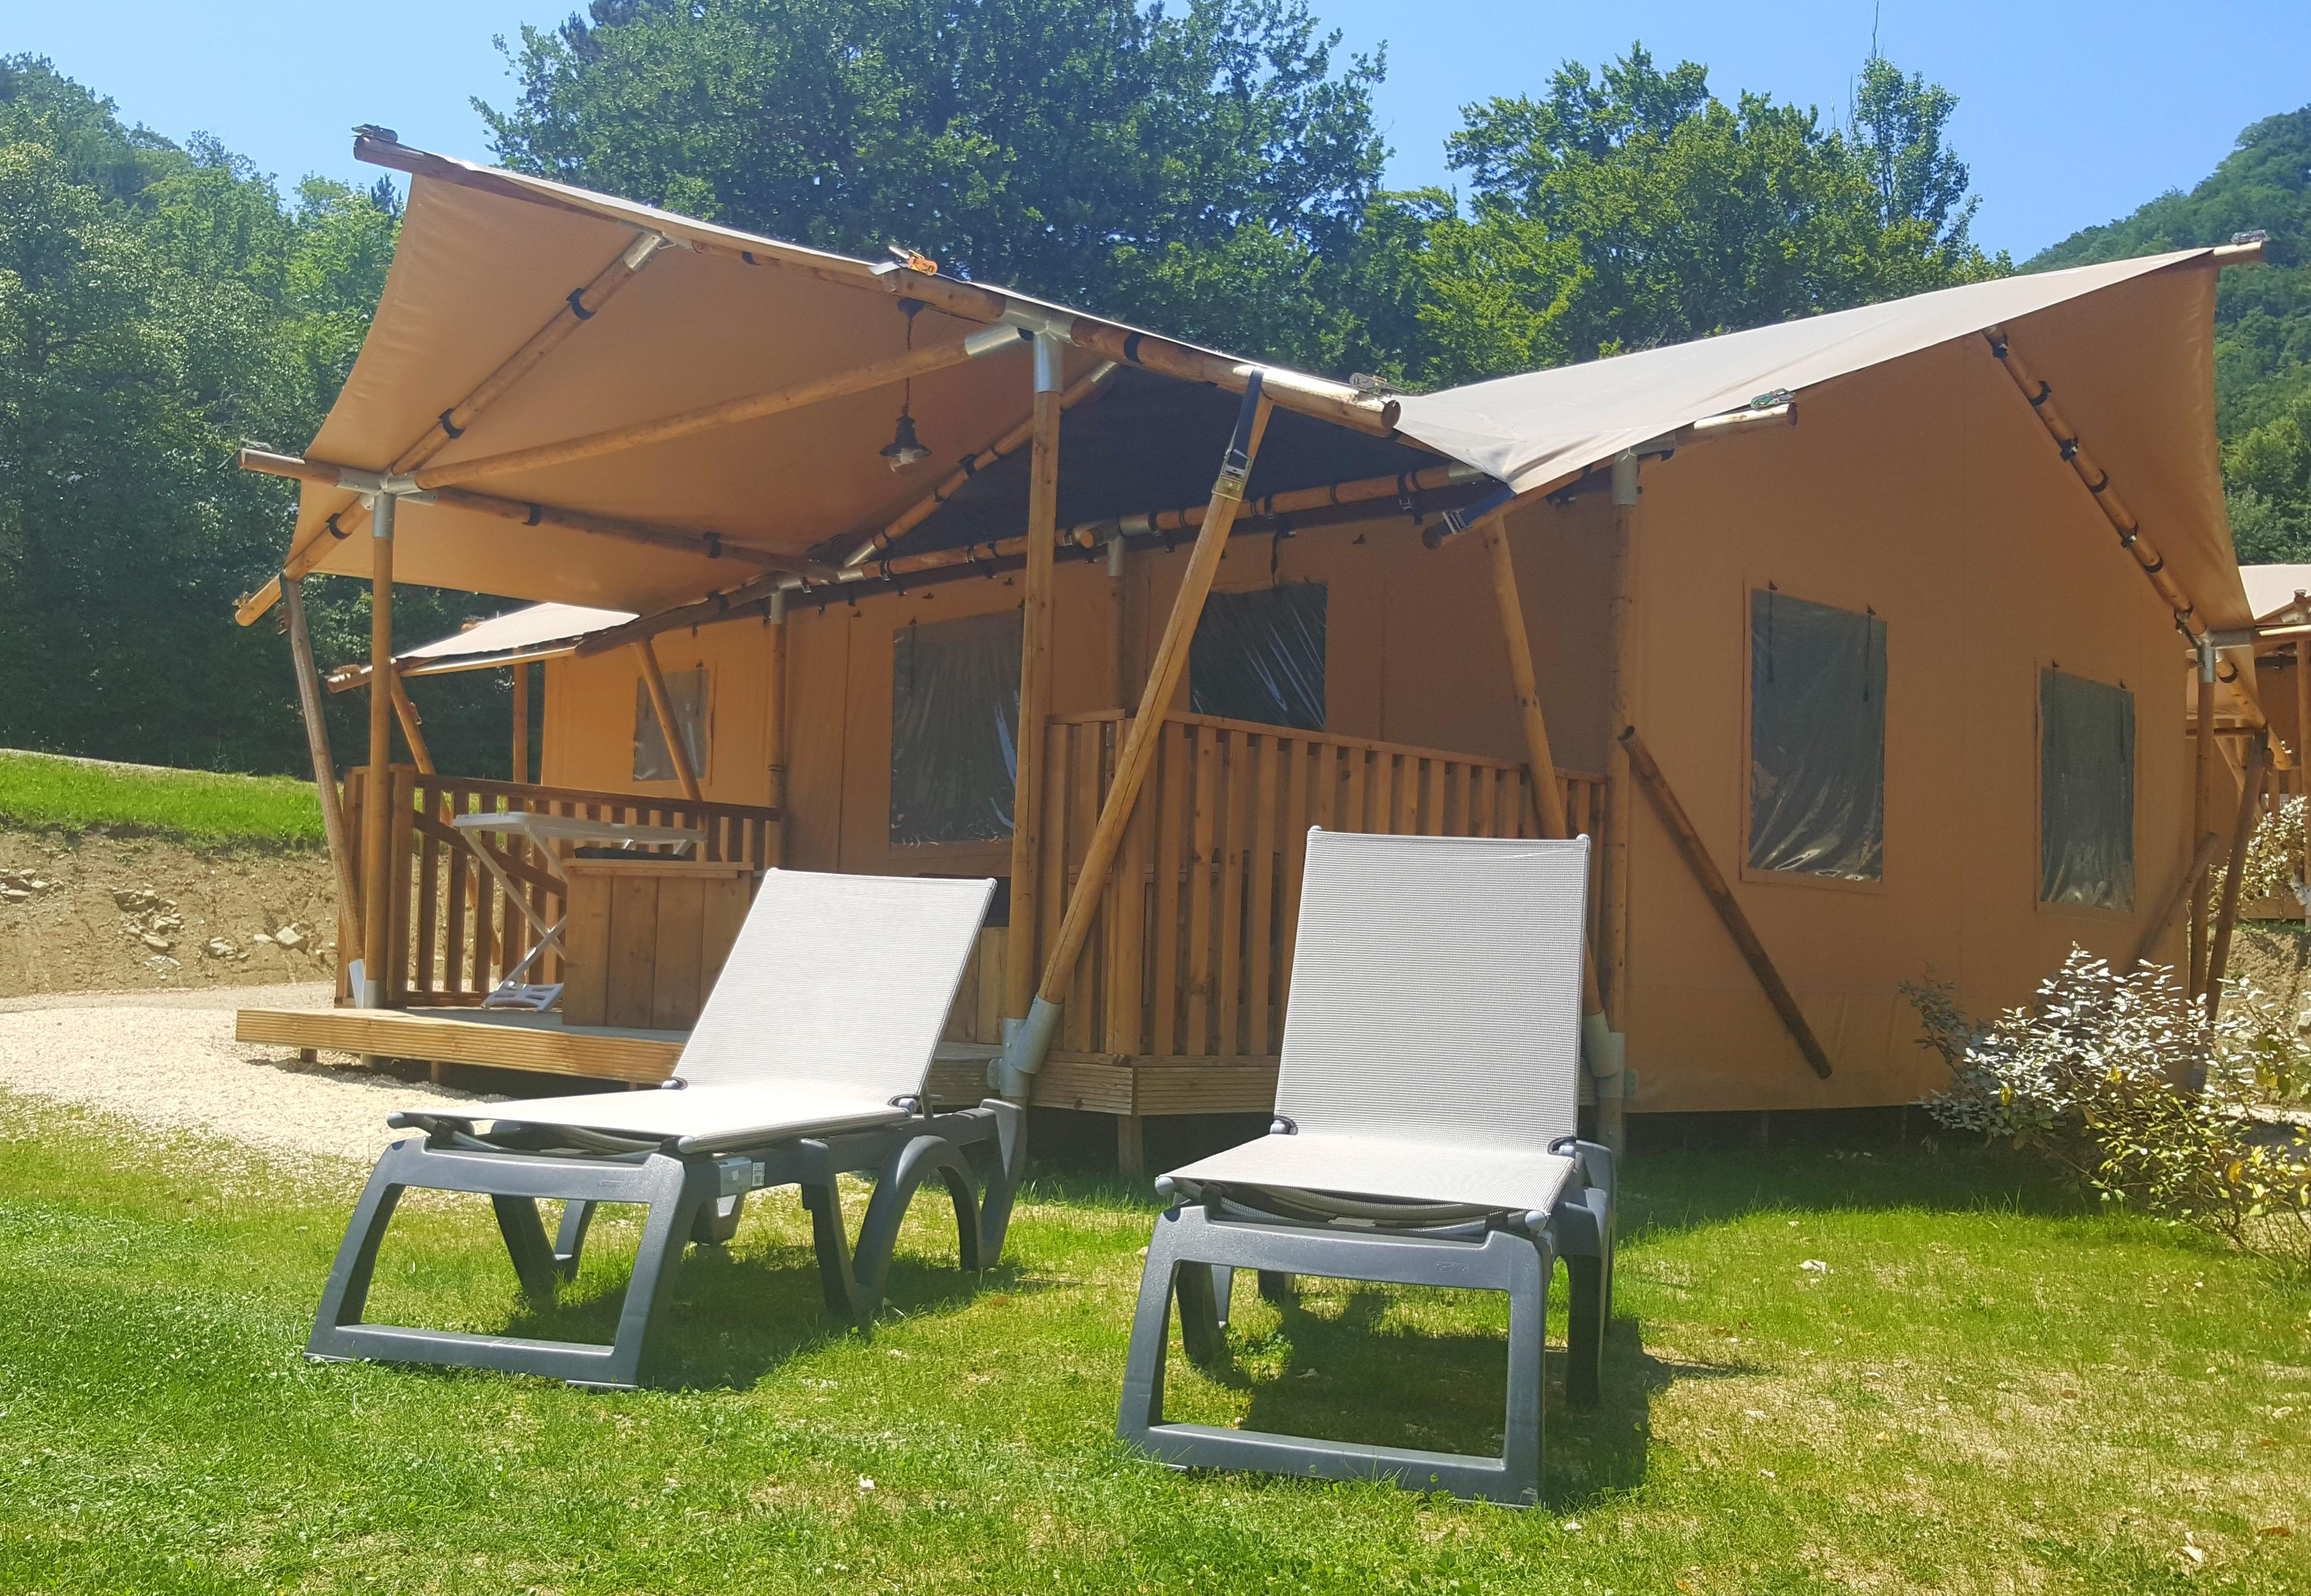 Accommodation - Tent Glamping 2 Bedrooms**** (Air Conditioning) - YELLOH! VILLAGE - LES BOIS DU CHATELAS